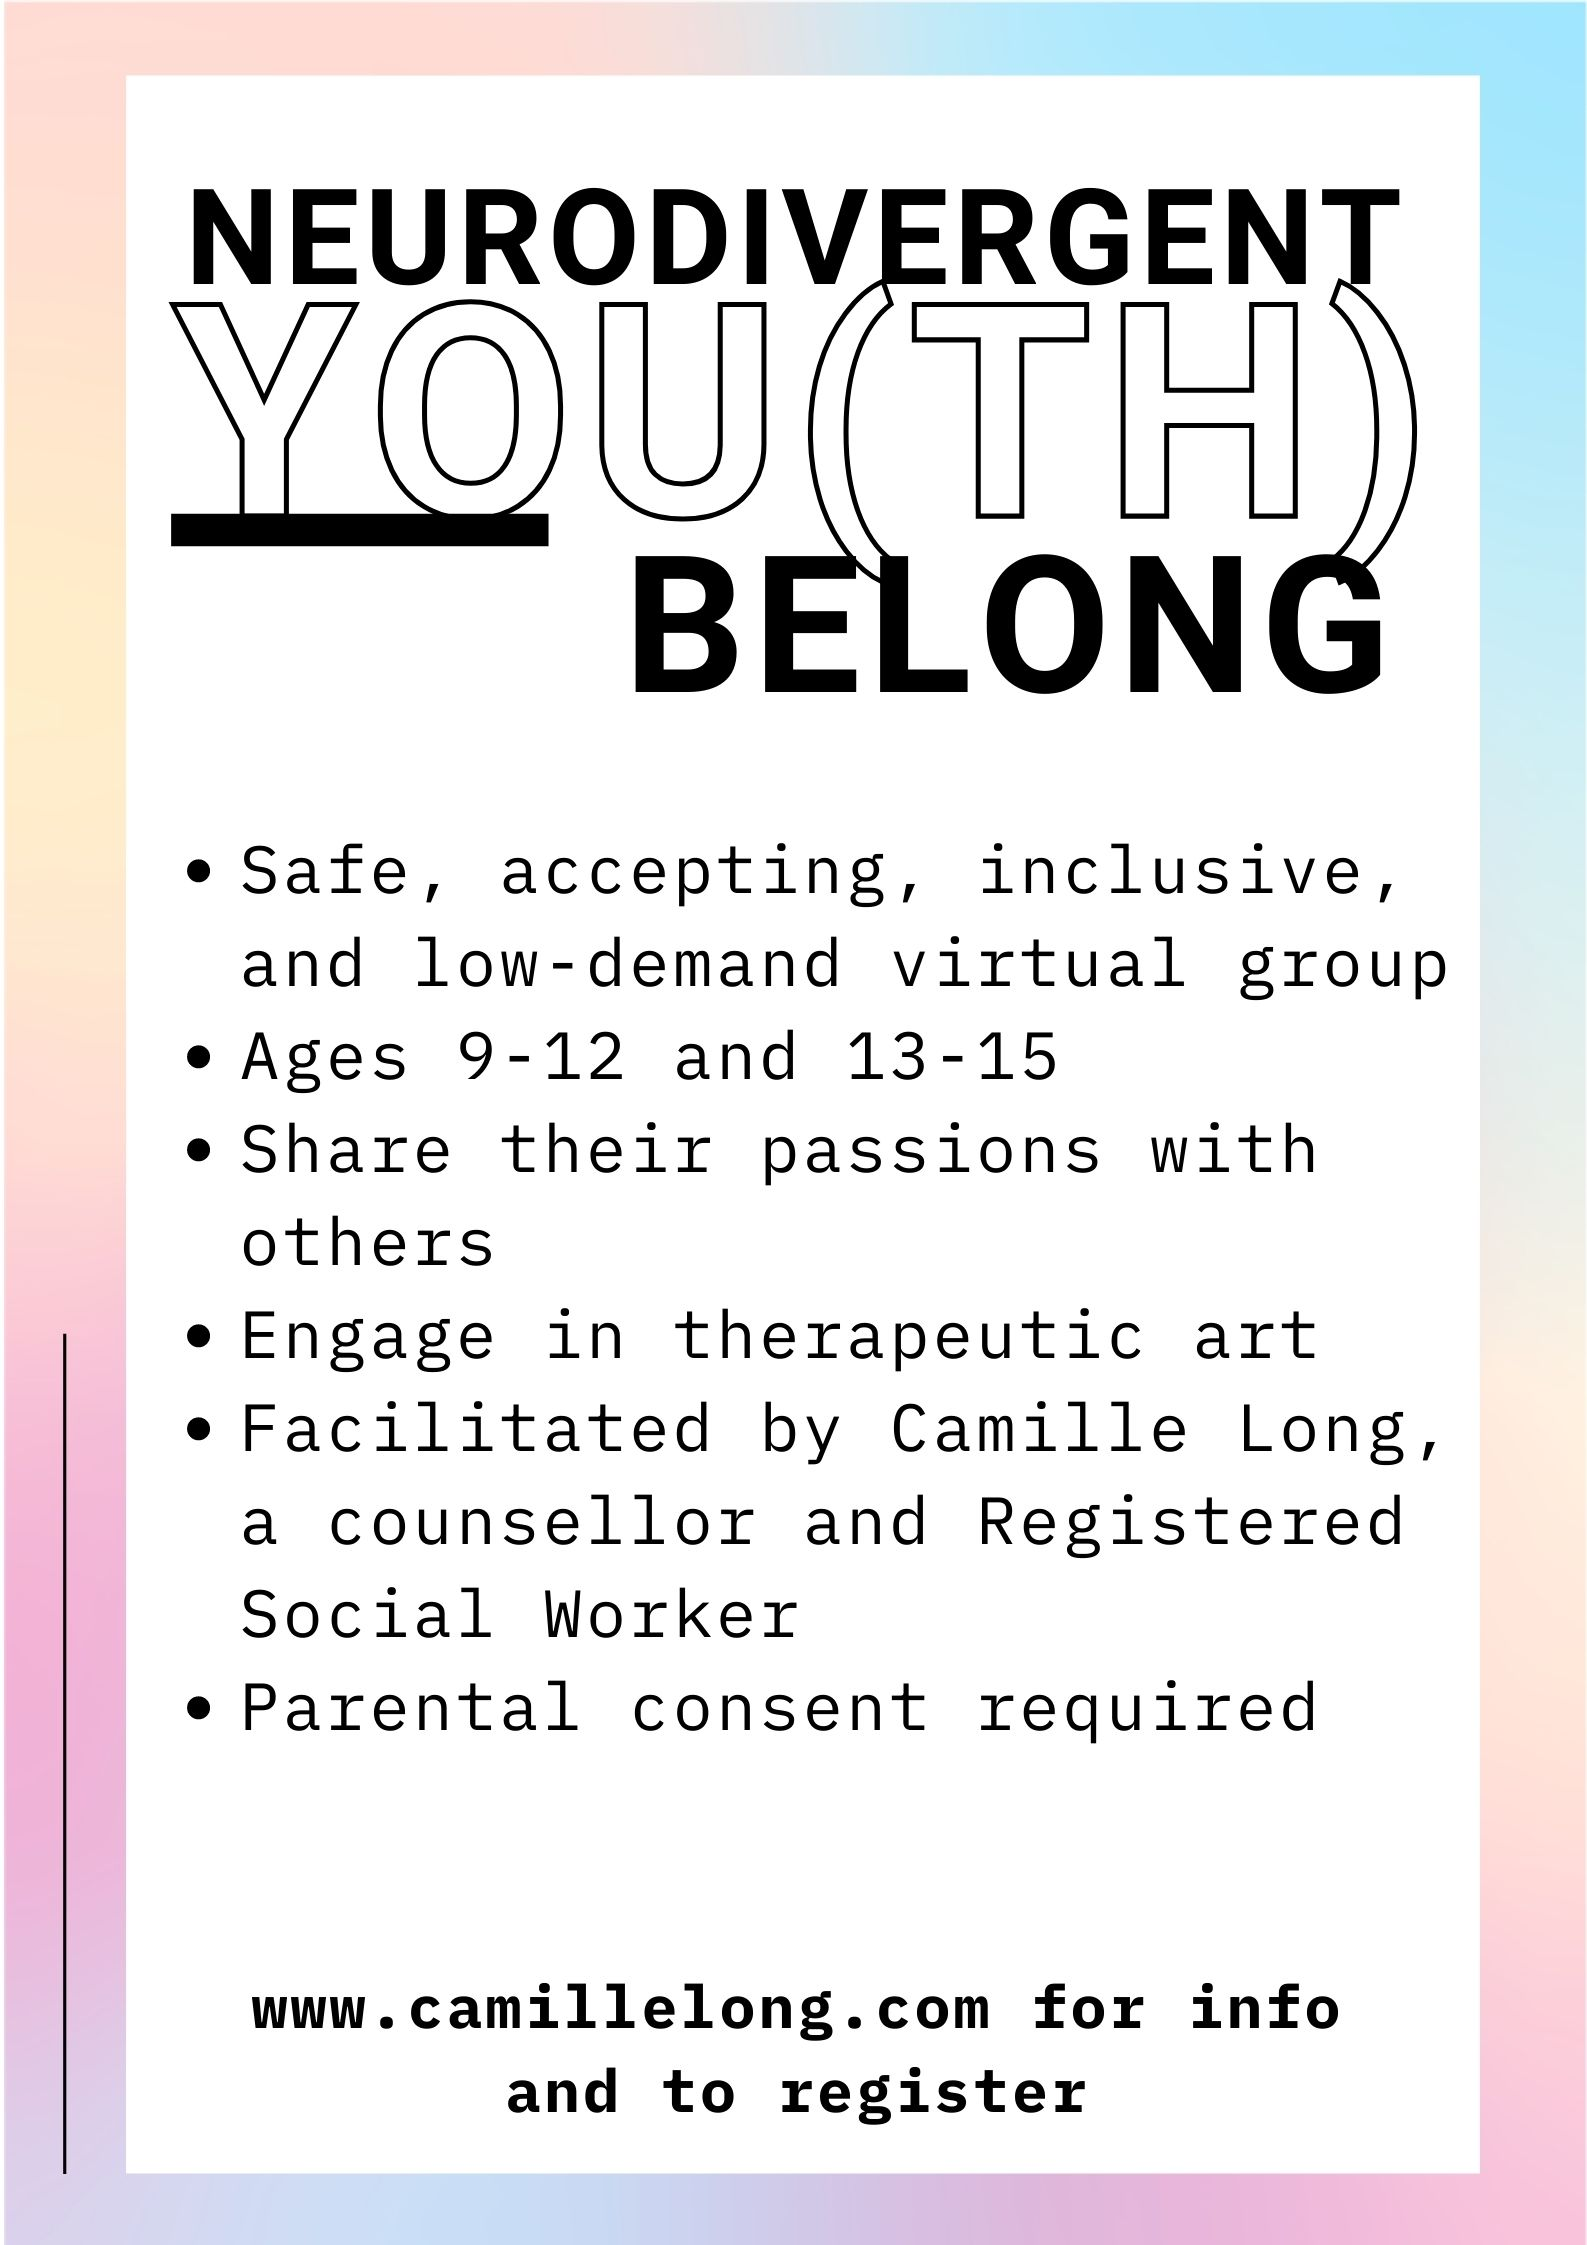 You(th) Belong - Groups for Neurodivergent Youth aged 9-12 & 13-15